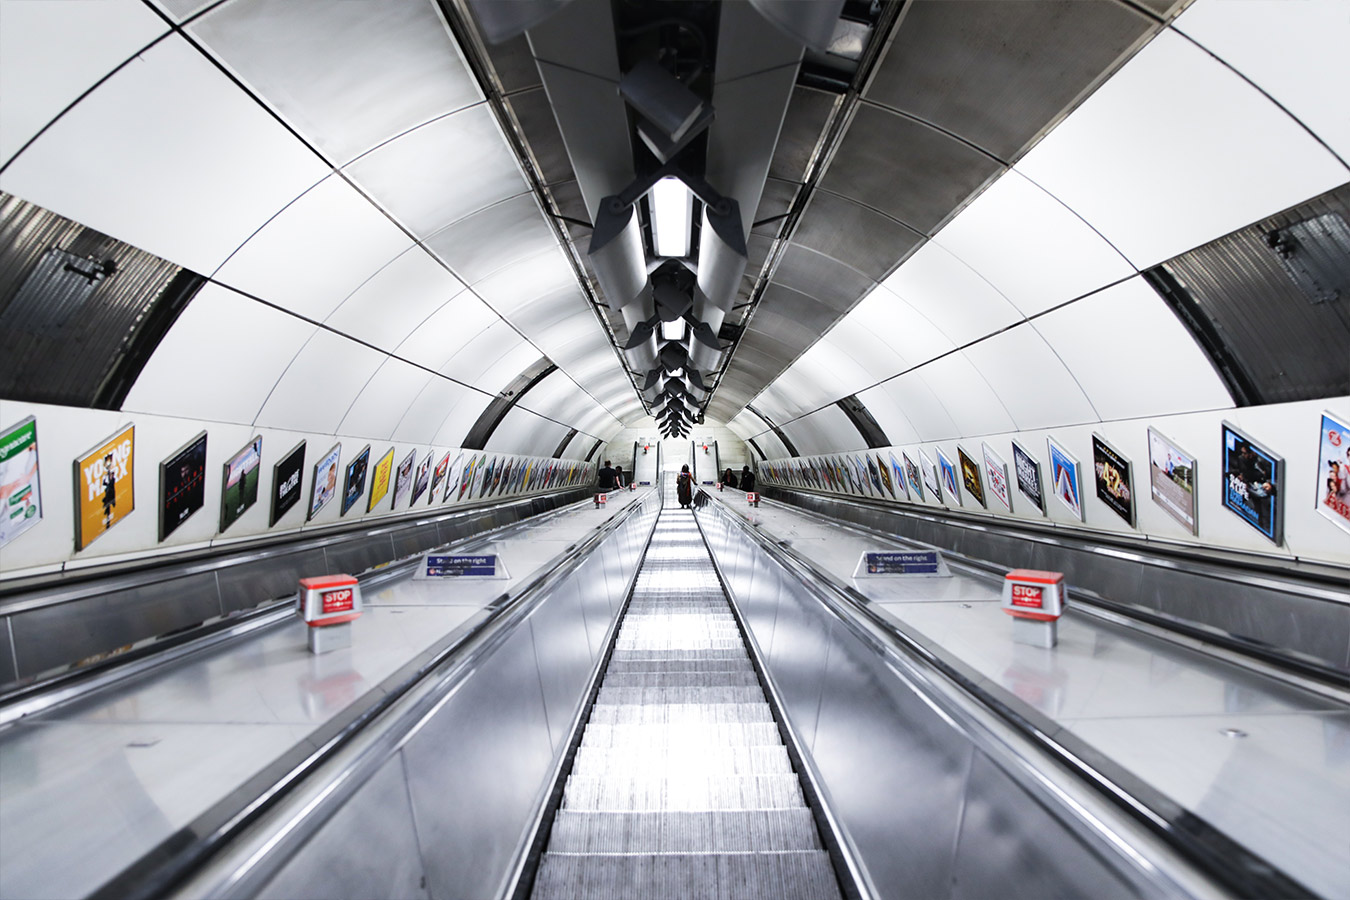 escalator tunnel lined with advertising campaign posters